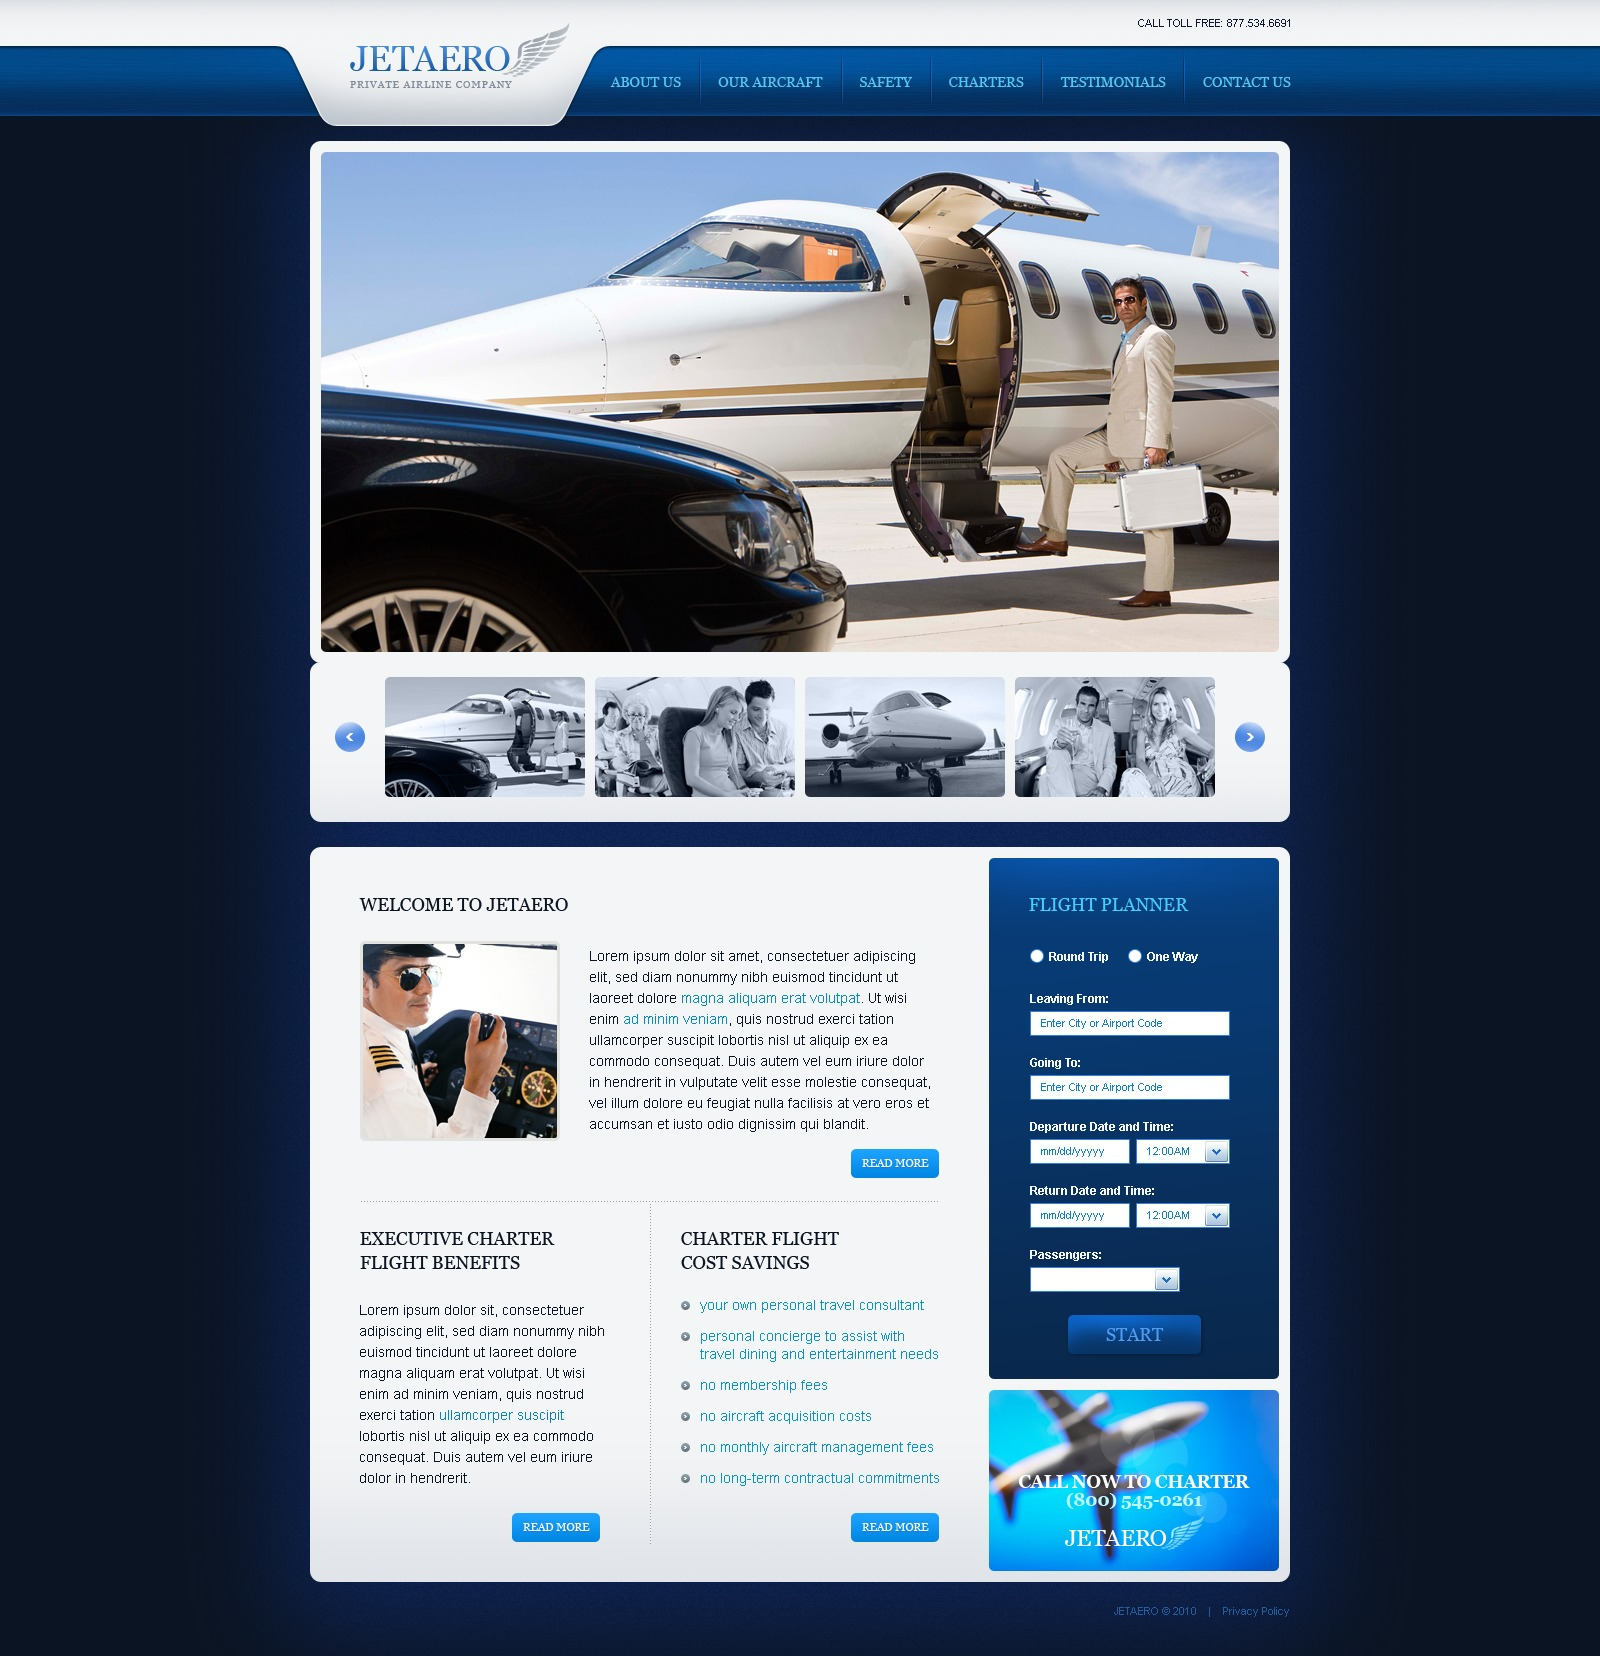 The Jataero Private Airlines PSD Design 54118, one of the best PSD templates of its kind (travel, transportation, flash 8, wide), also known as jataero private airlines PSD template, airport company PSD template, flight hotels PSD template, car PSD template, citybreaks PSD template, country PSD template, departure PSD template, destination PSD template, airport PSD template, returning PSD template, plan PSD template, booking PSD template, ticket PSD template, arrival PSD template, reservation PSD template, travel PSD template, vacation PSD template, stewardess PSD template, offers PSD template, tours PSD template, resort PSD template, location PSD template, authorization PSD template, guide PSD template, visa PSD template, discount PSD template, liner PSD template, t and related with jataero private airlines, airport company, flight hotels, car, citybreaks, country, departure, destination, airport, returning, plan, booking, ticket, arrival, reservation, travel, vacation, stewardess, offers, tours, resort, location, authorization, guide, visa, discount, liner, t, etc.